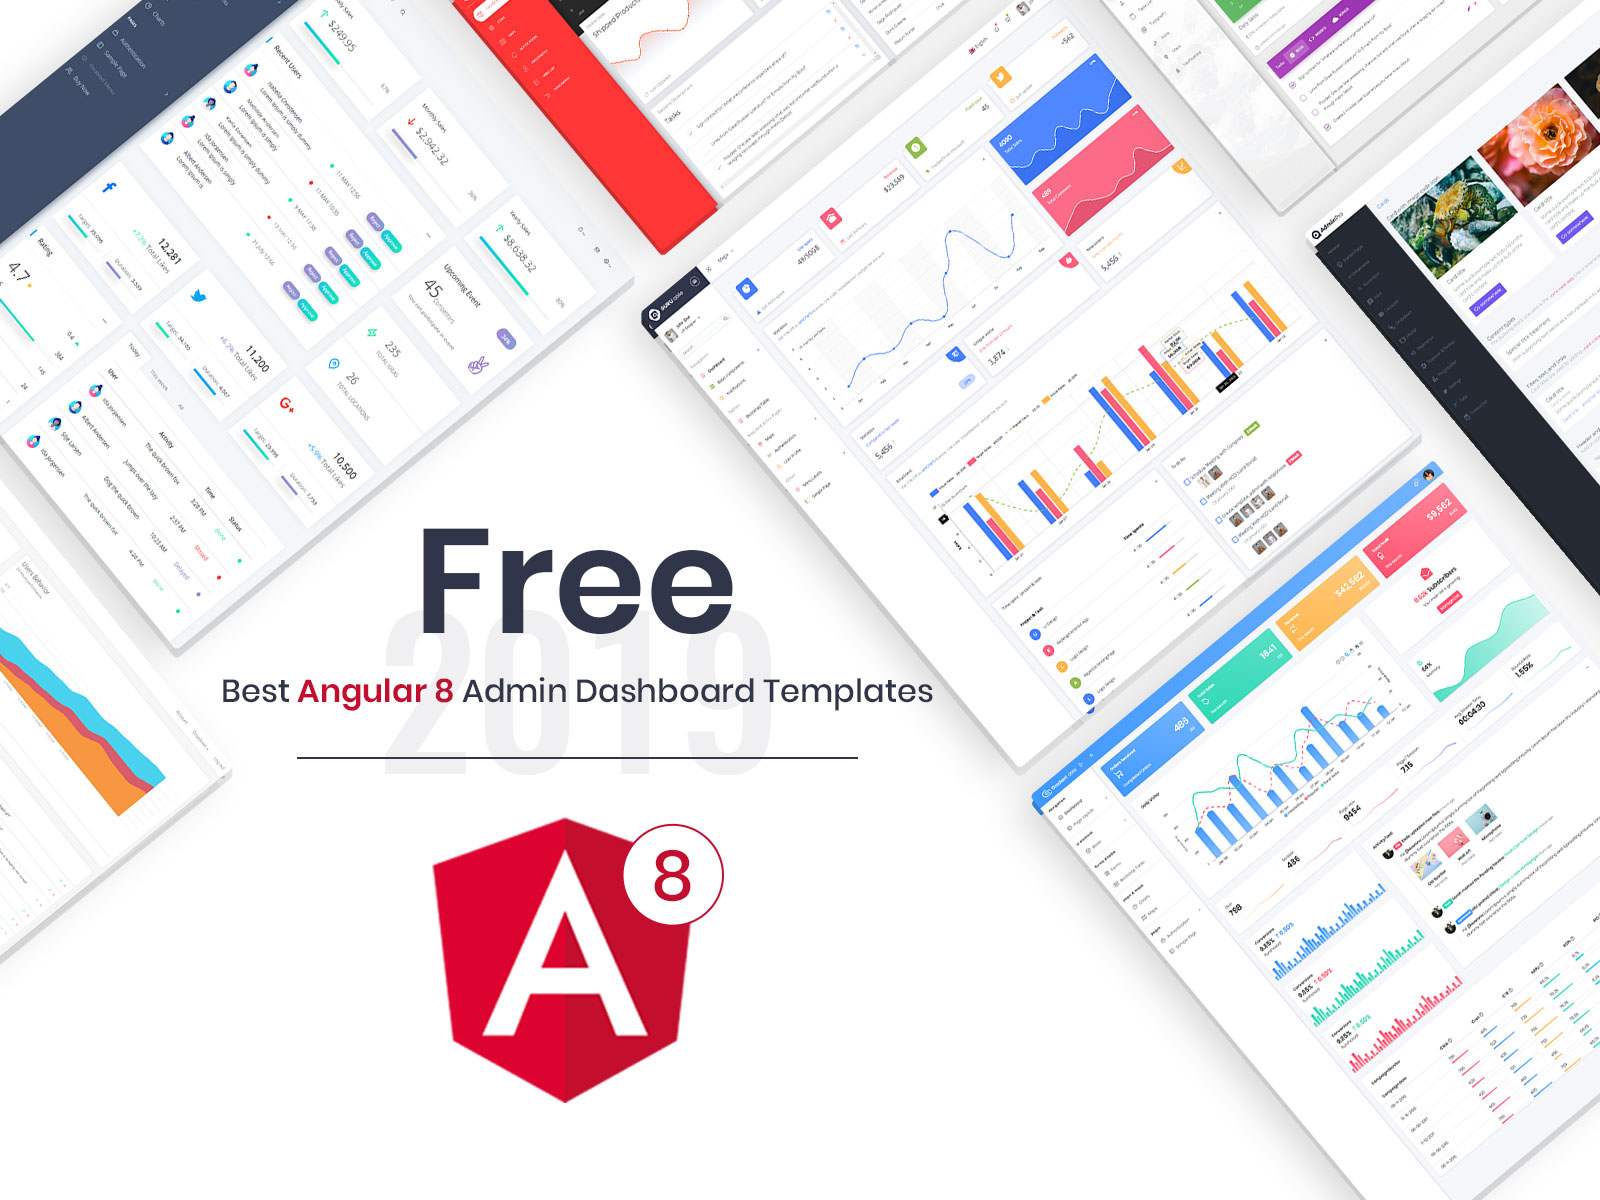 Best Angular 8 Free Admin Dashboard Templates